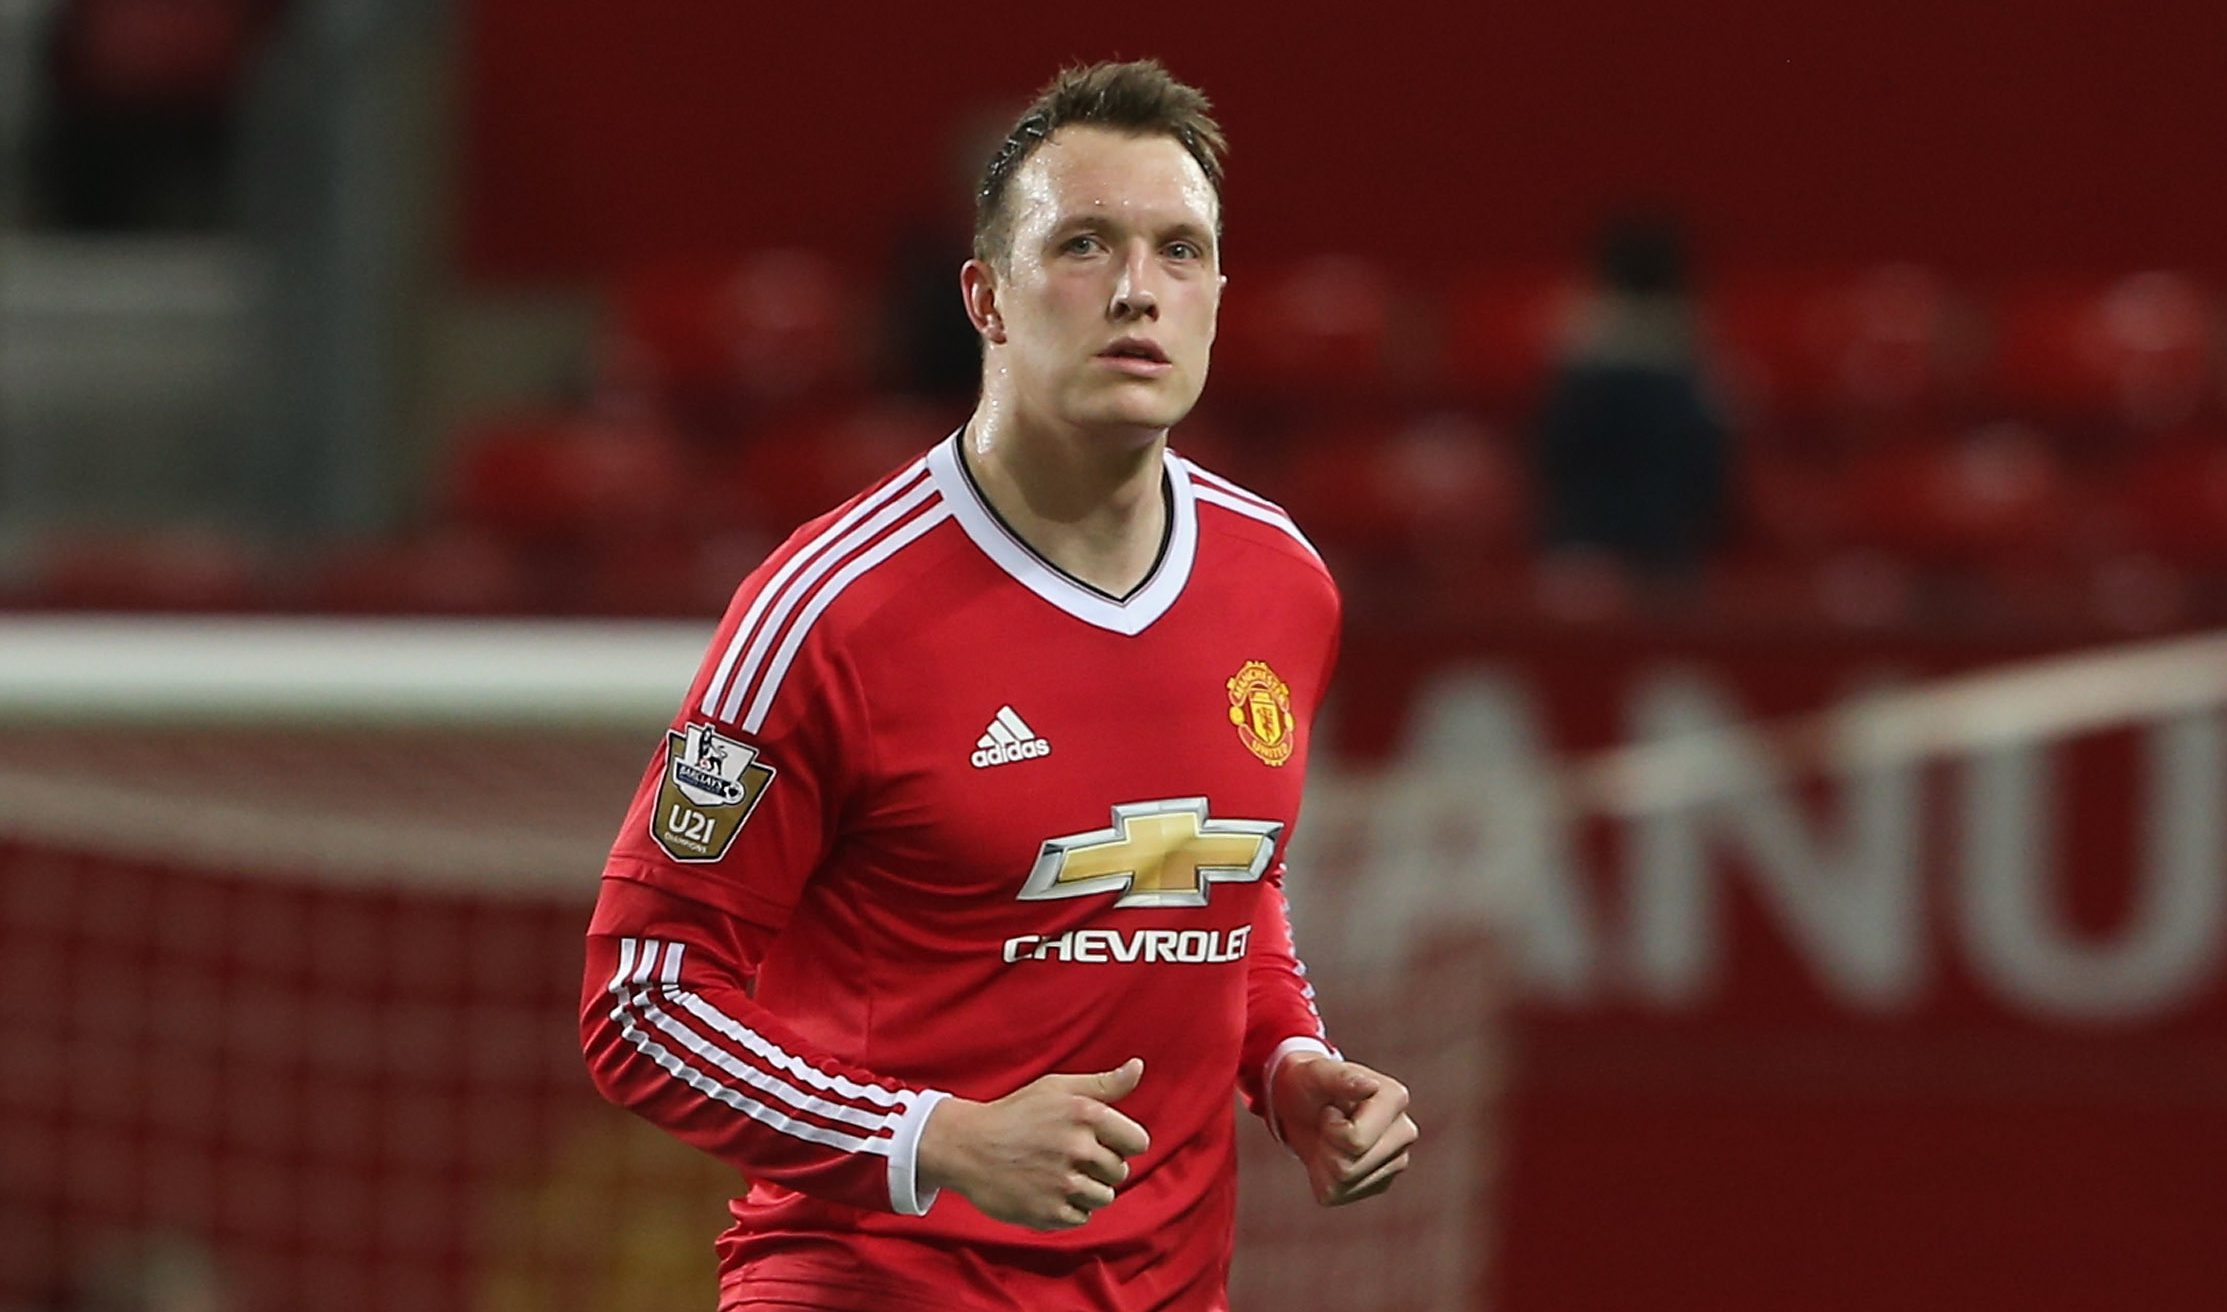 MANCHESTER, ENGLAND - APRIL 04: Phil Jones of Manchester United U21s is substituted during the U21 Premier League match between Manchester United U21s and Chelsea U21s at Old Trafford on April 4, 2016 in Manchester, England. (Photo by Matthew Peters/Man Utd via Getty Images)